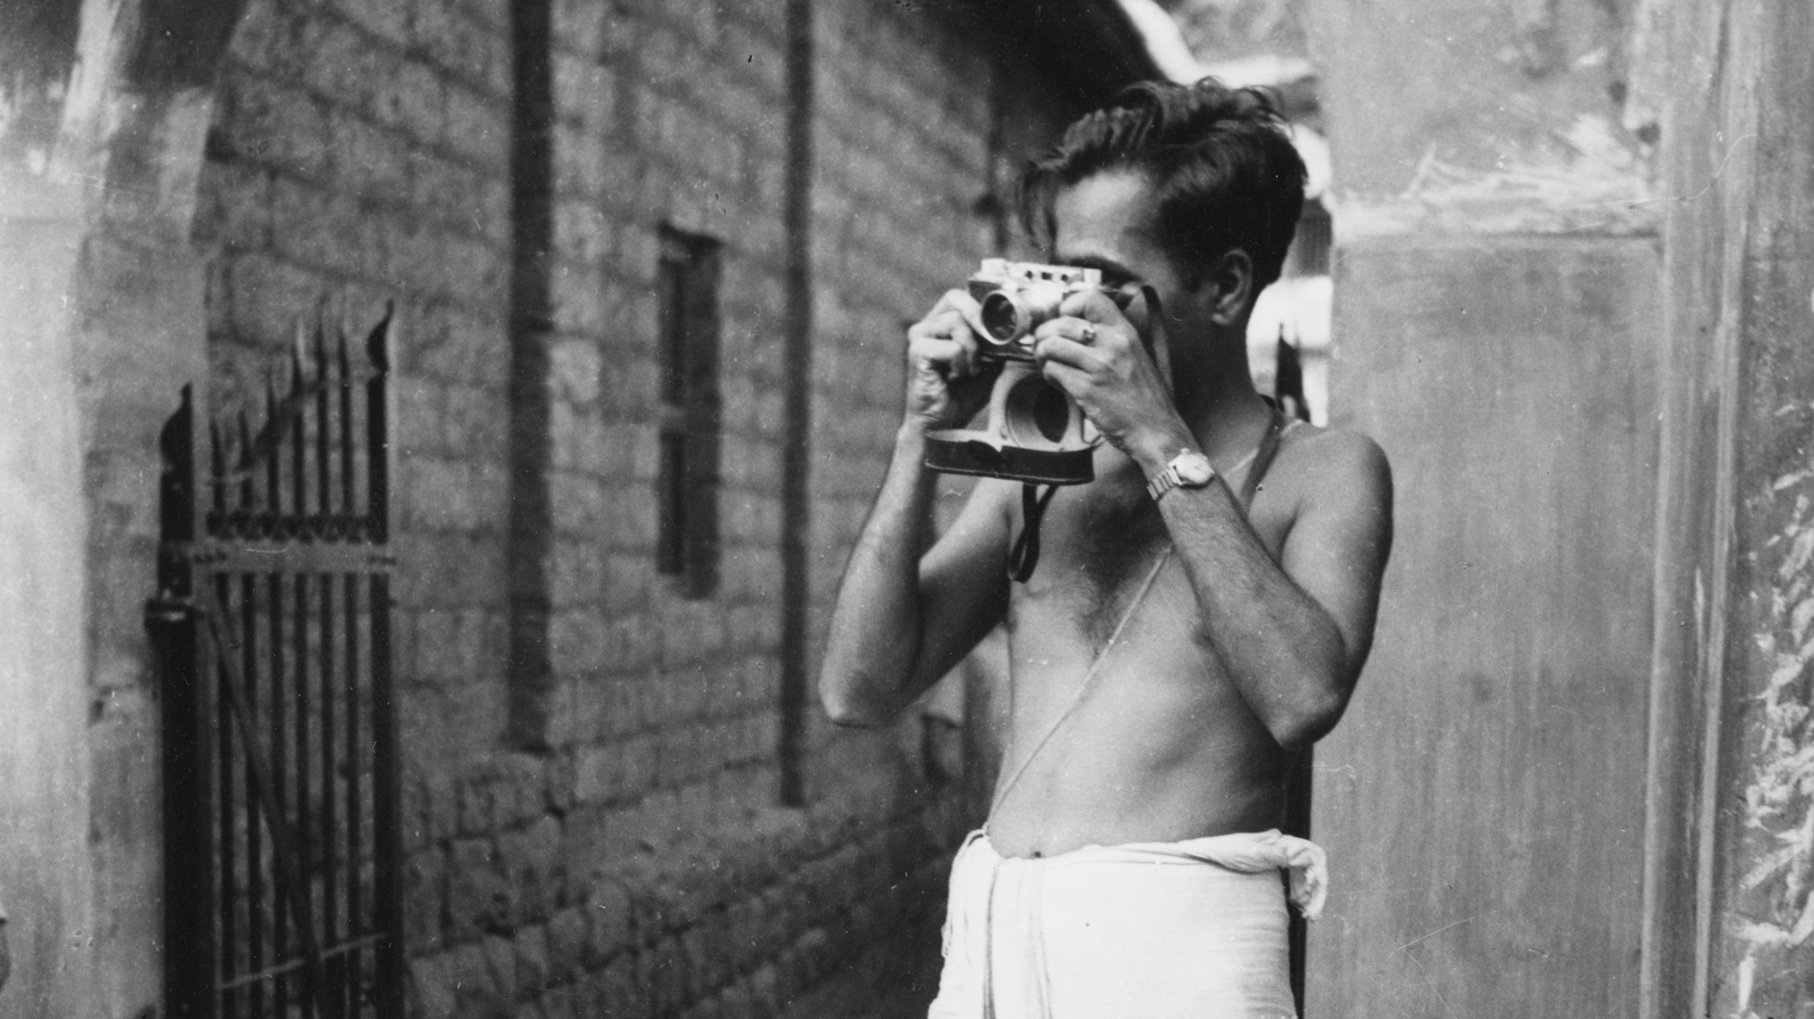 India in the '60s and '70s, captured by a pioneering photojournalist